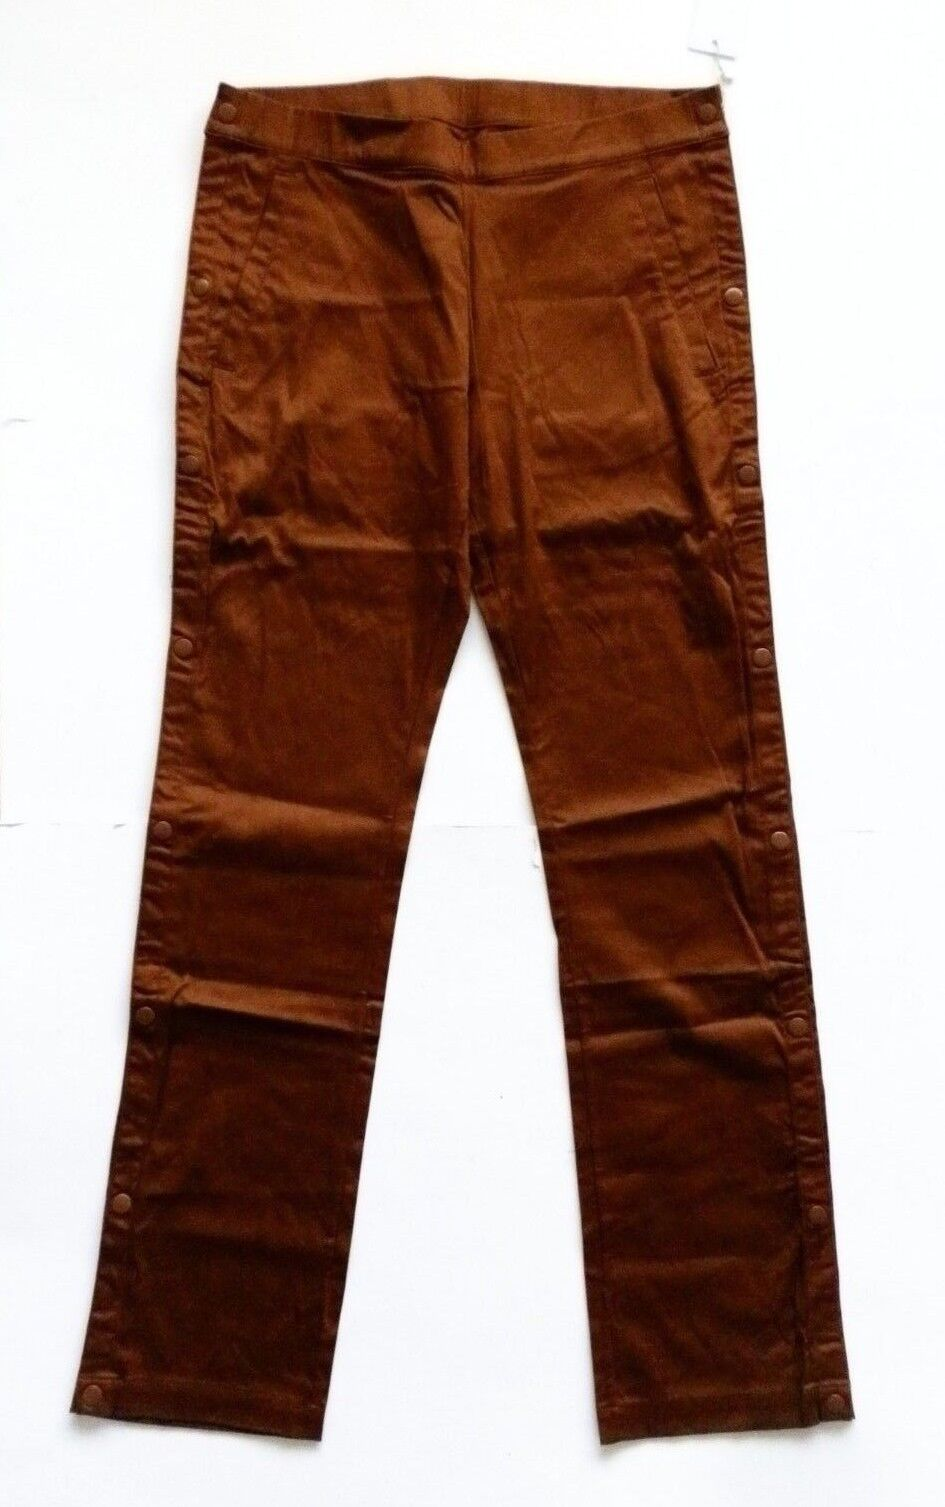 HAN KJOBENHAVN BROWN MALL PANTS TROUSERS WITH POPPER SIDES 32W 32L.